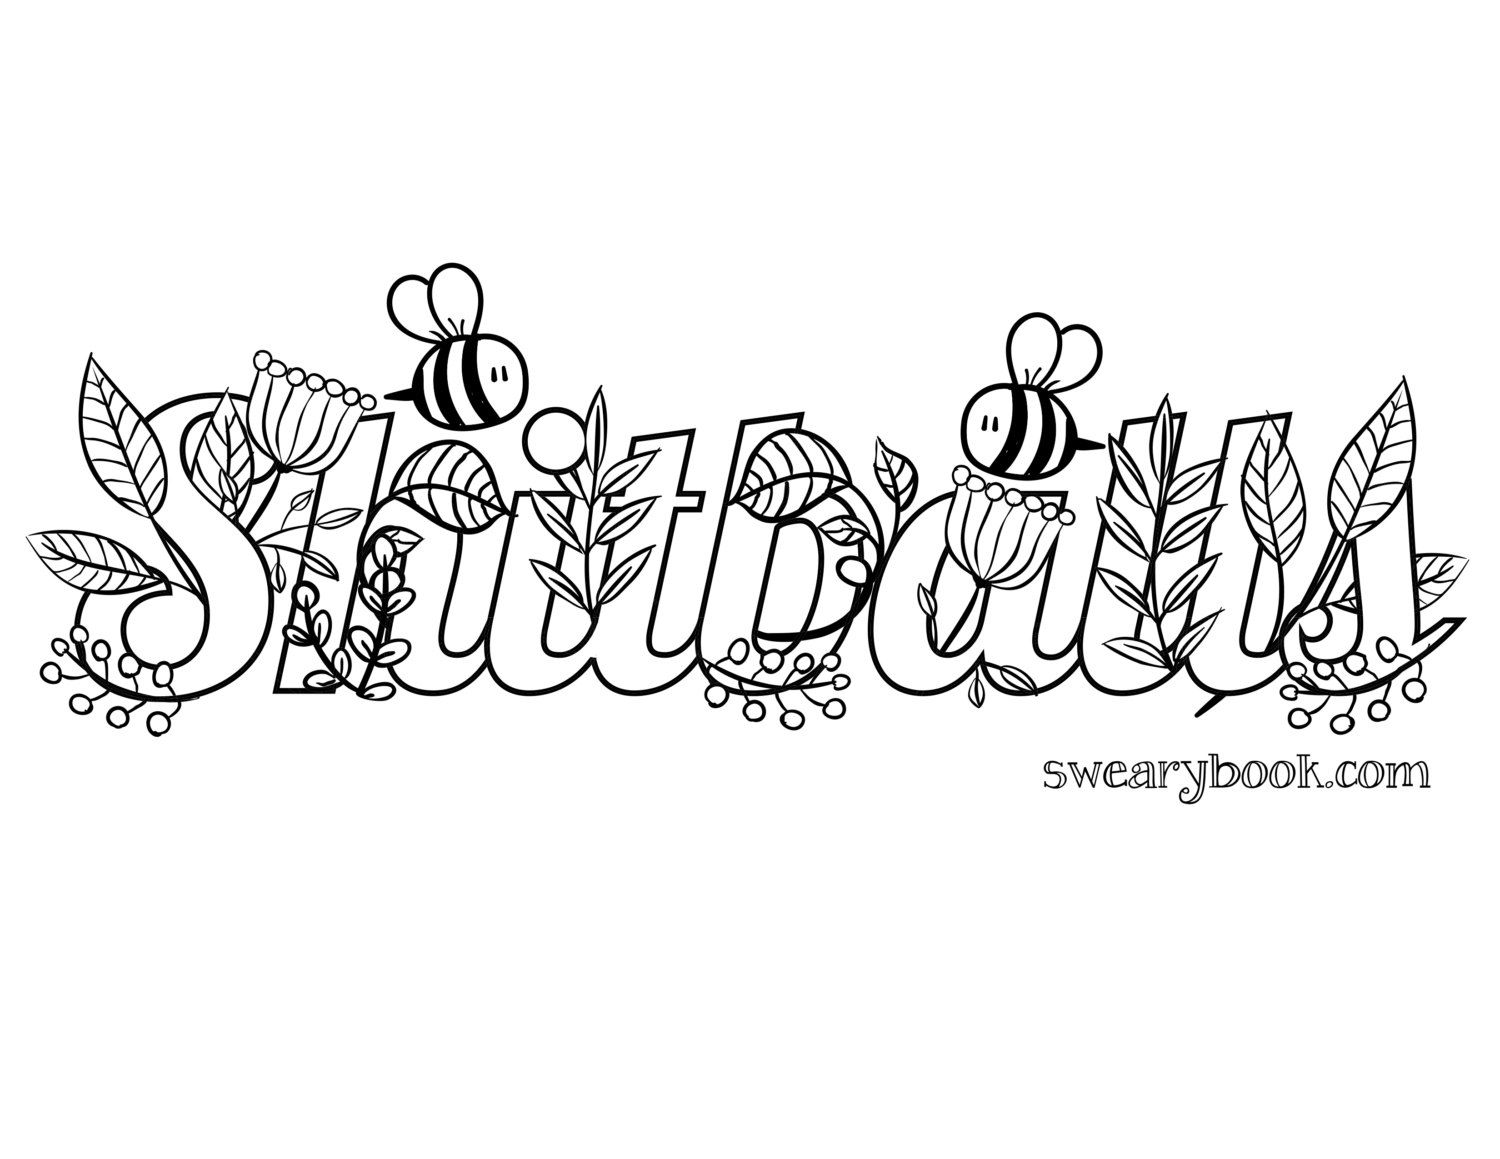 Shitballs swear words coloring page from the sweary coloring book swearing colouring pages for